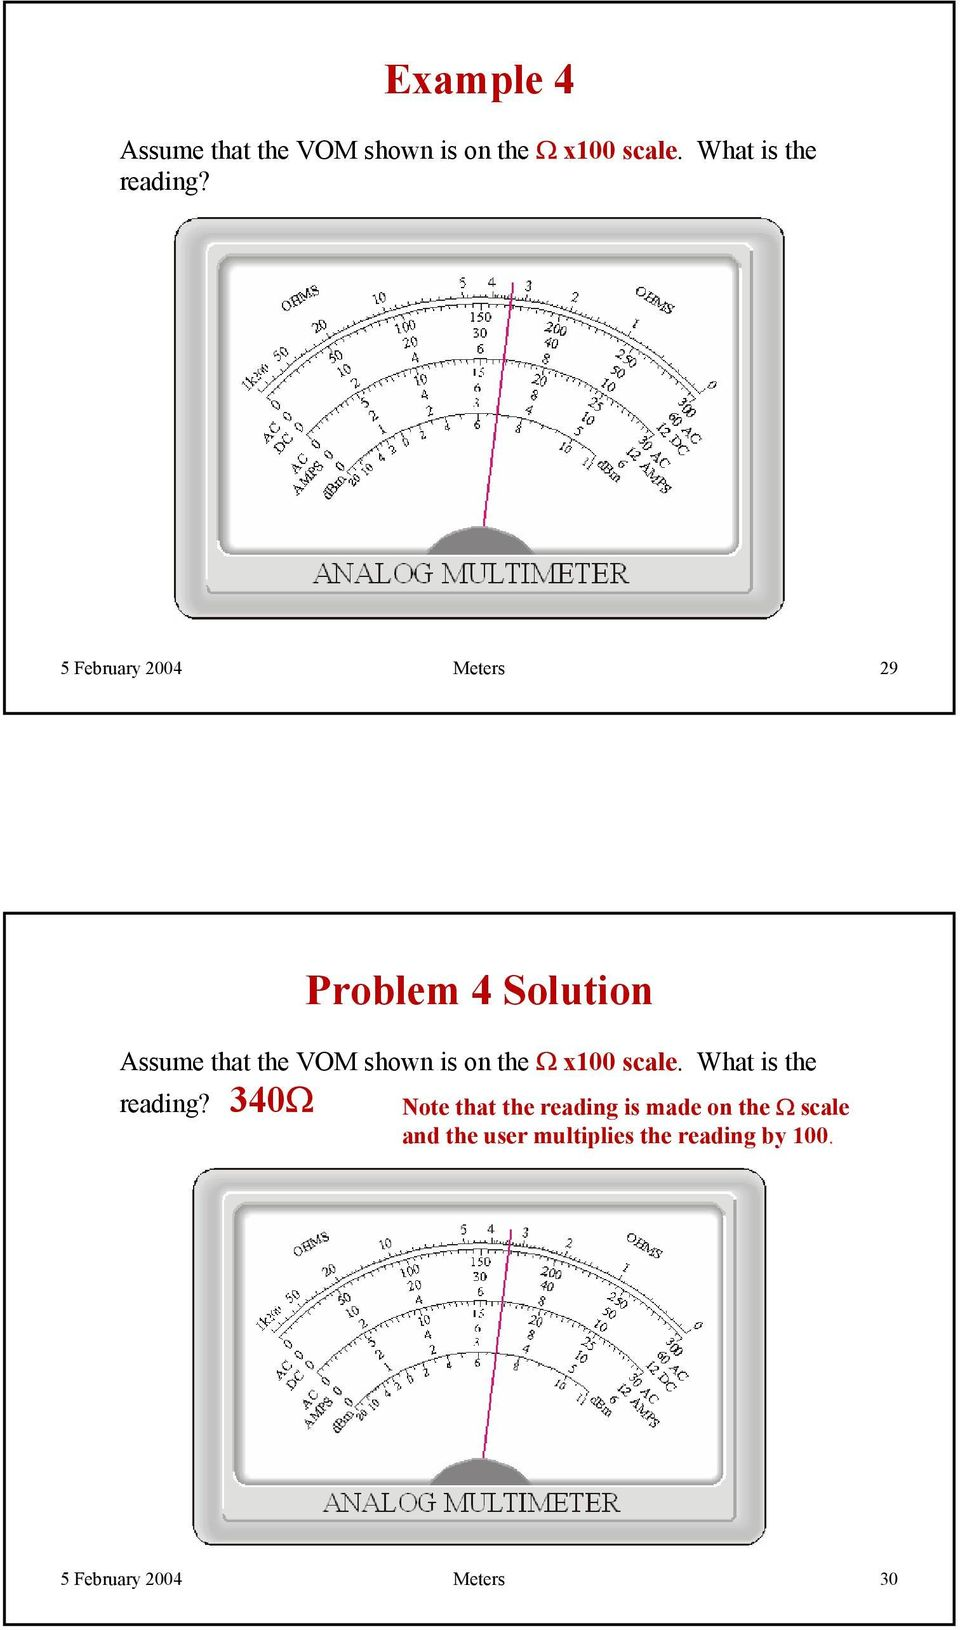 5 February Meters 9 Problem Solution Assume that the VOM shown is on the